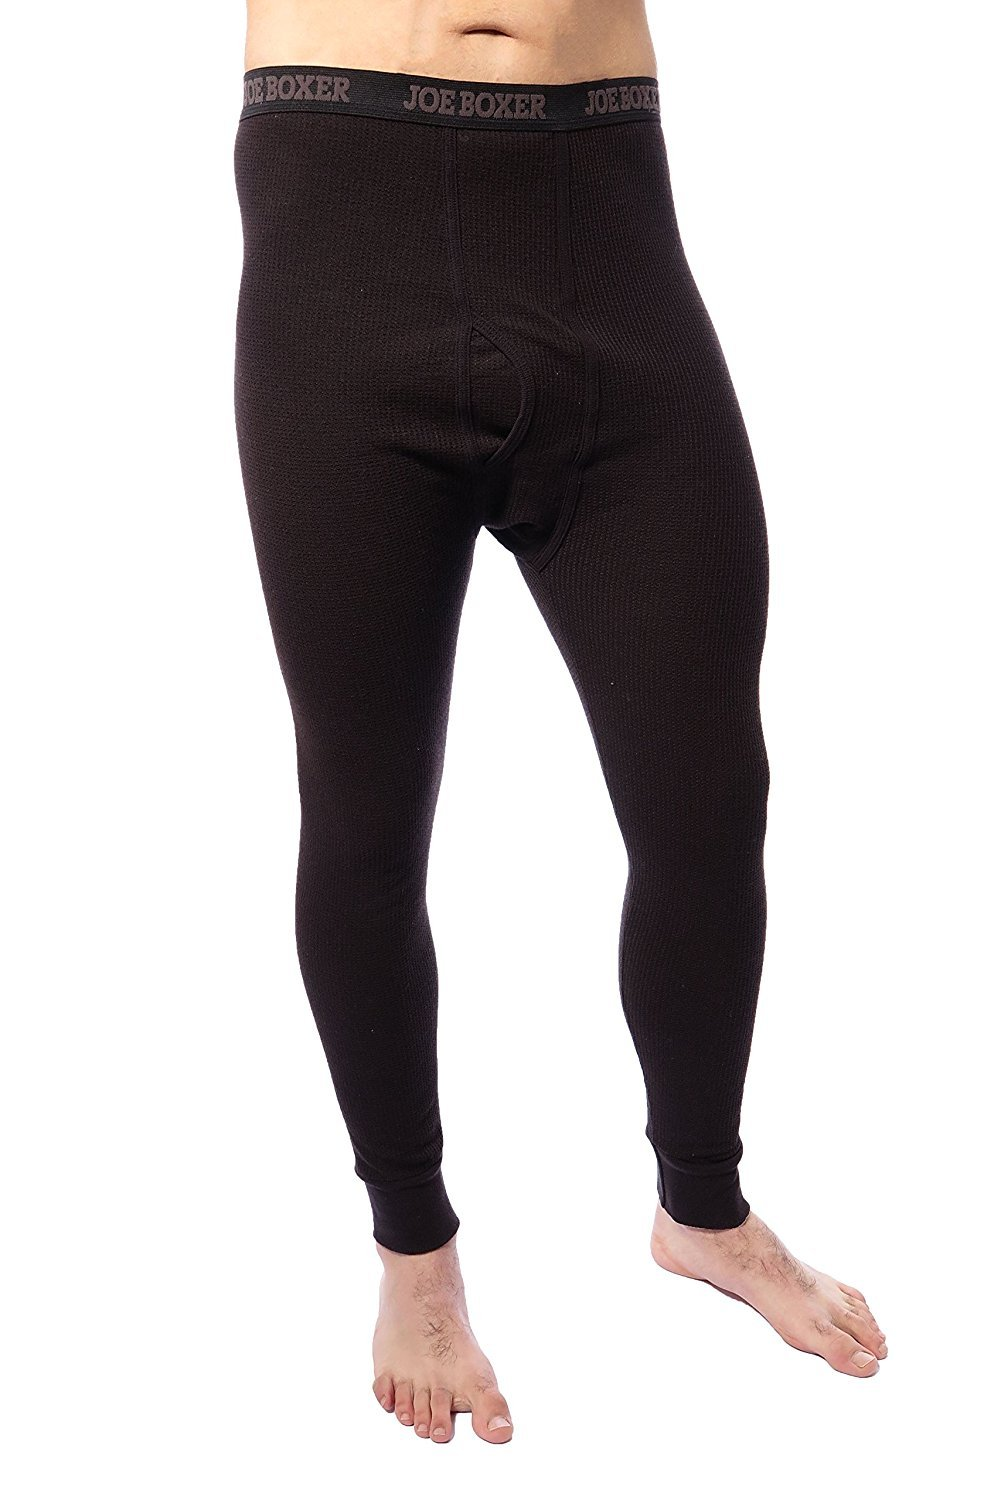 Dickies Baselayer Thermal Long Johns Black TH50000